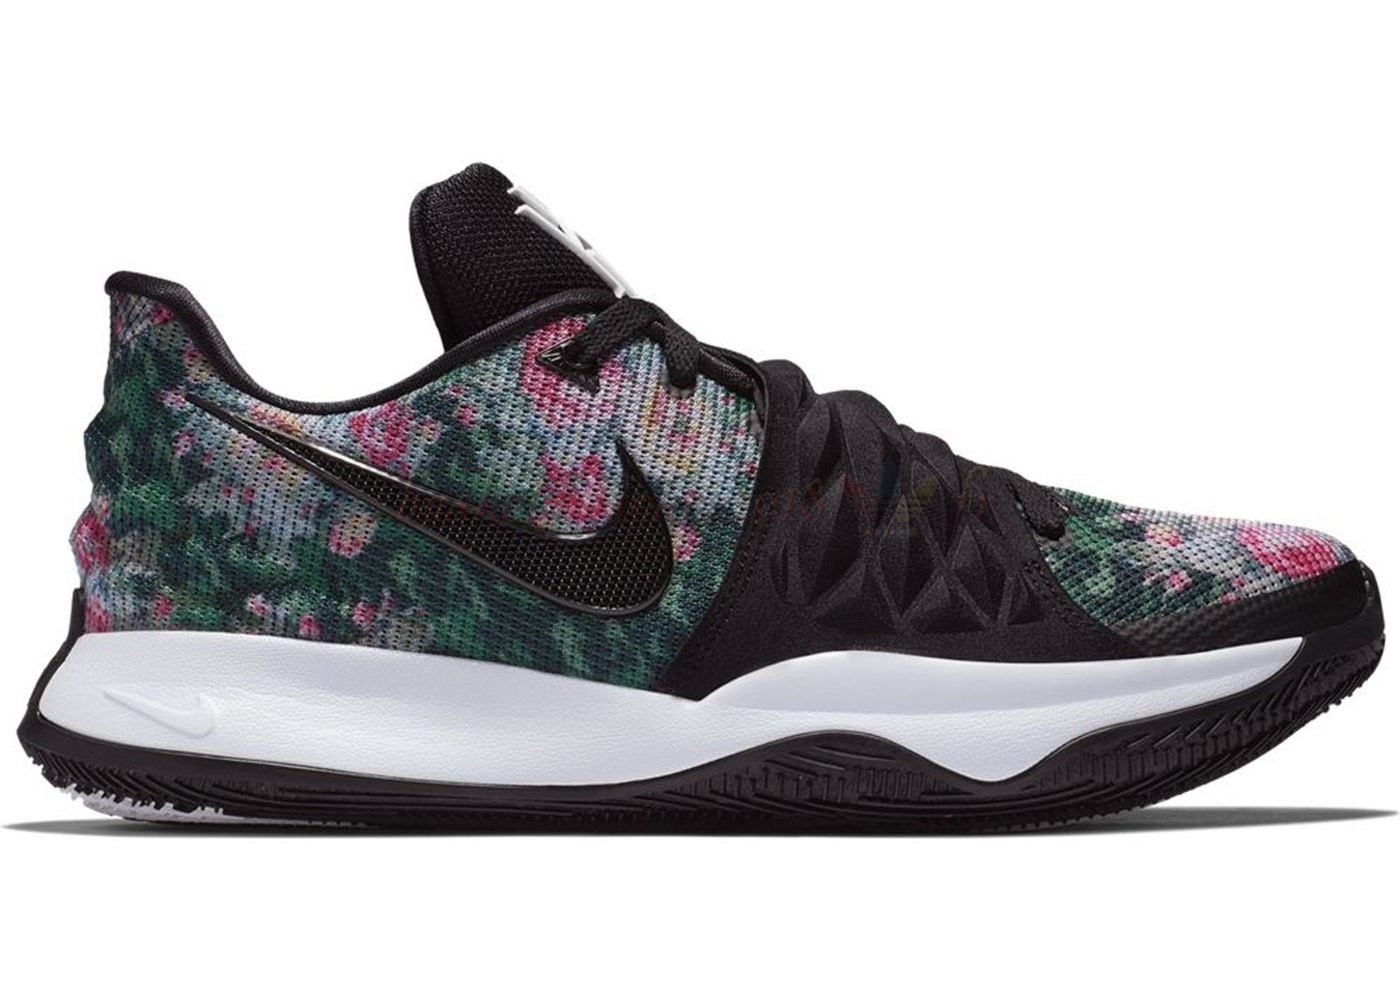 "Vente Chaude Chaussures De Basketball Homme Nike Kyrie Irving I 1 Low ""Floral"" Noir (ao8980-002) Pas Cher"